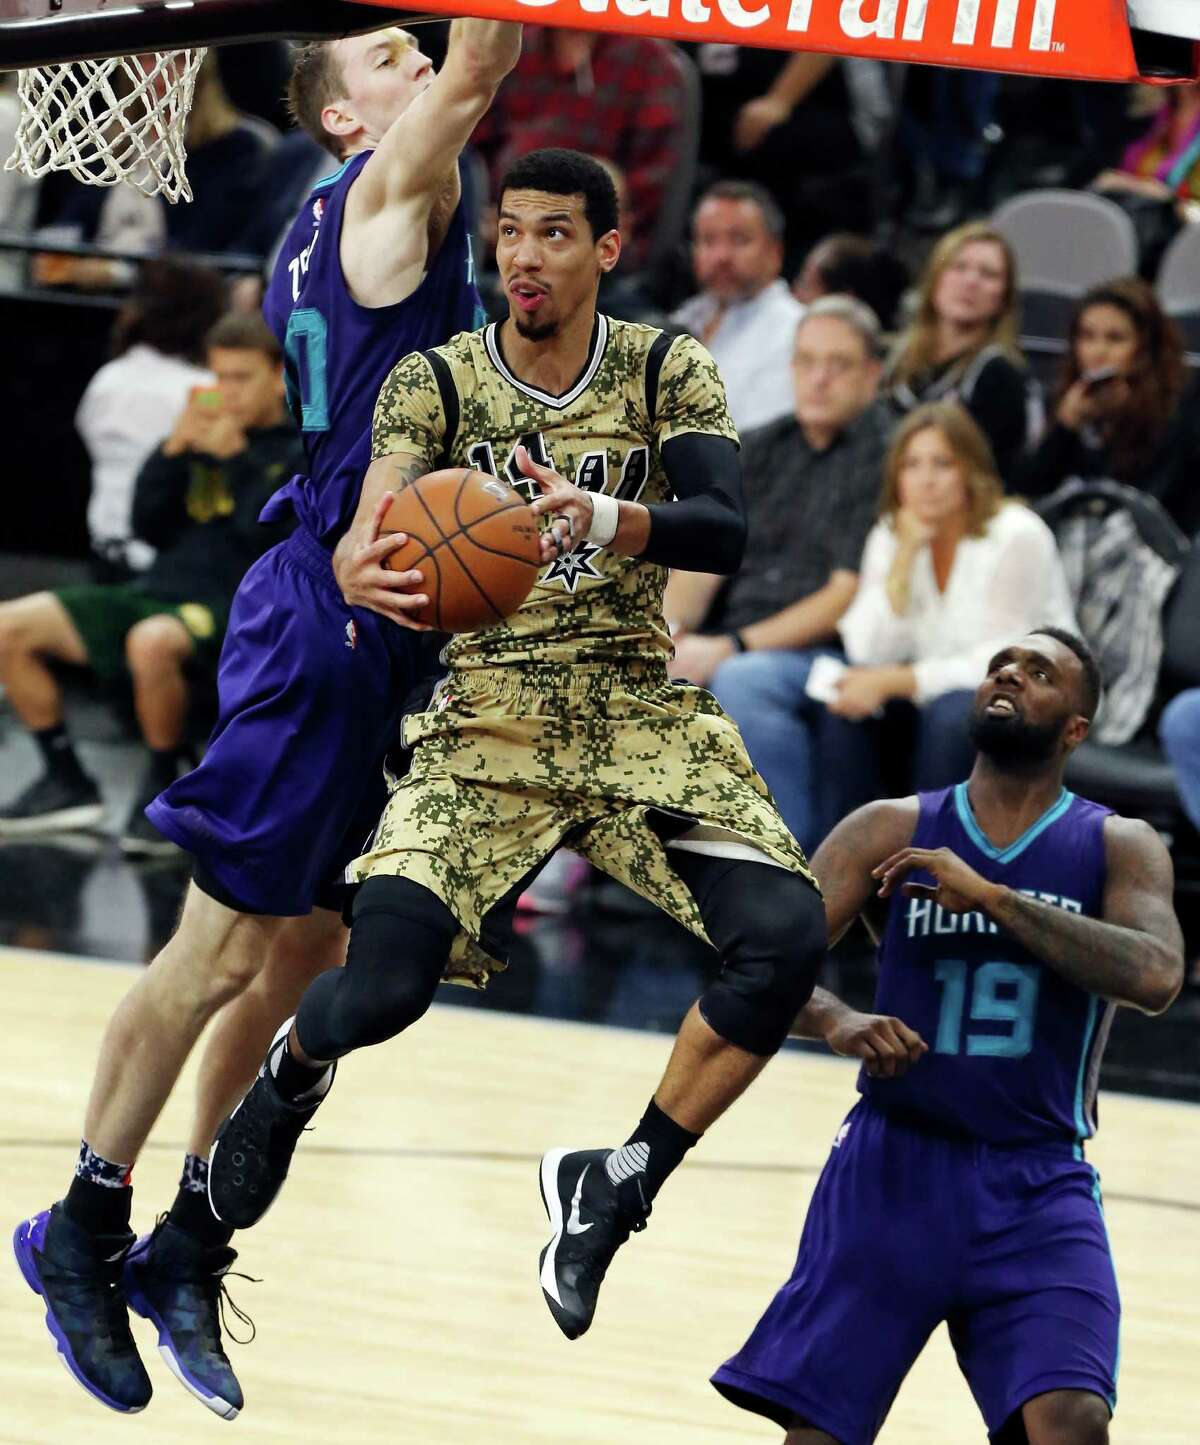 San Antonio Spurs' Danny Green drives to the basket between Charlotte Hornets' Cody Zeller (left) and P.J. Hairston during first half action Saturday Nov. 7, 2015 at the AT&T Center.